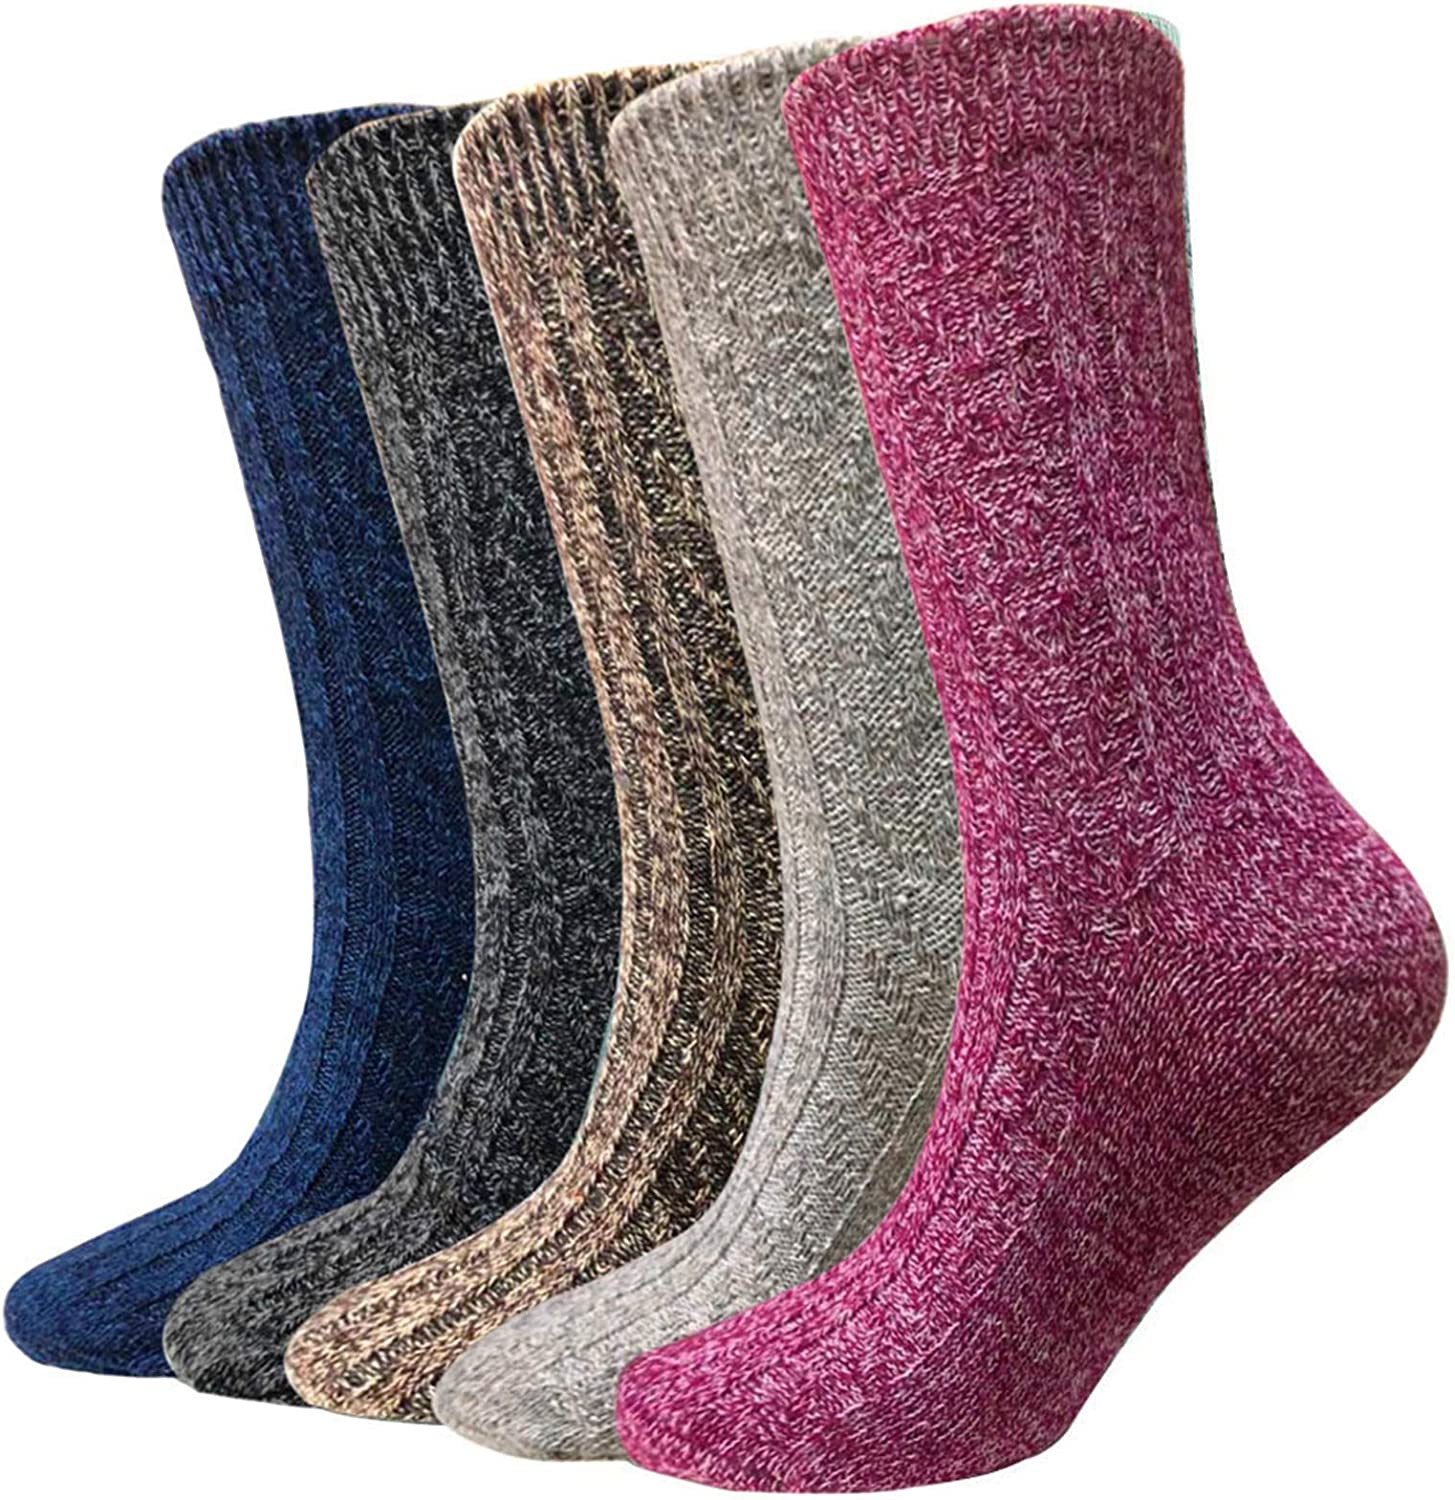 Wool Socks for Women 5 Pairs Hiker Winter Soft Thick Warm Boot Cozy Crew Knit Socks Gifts